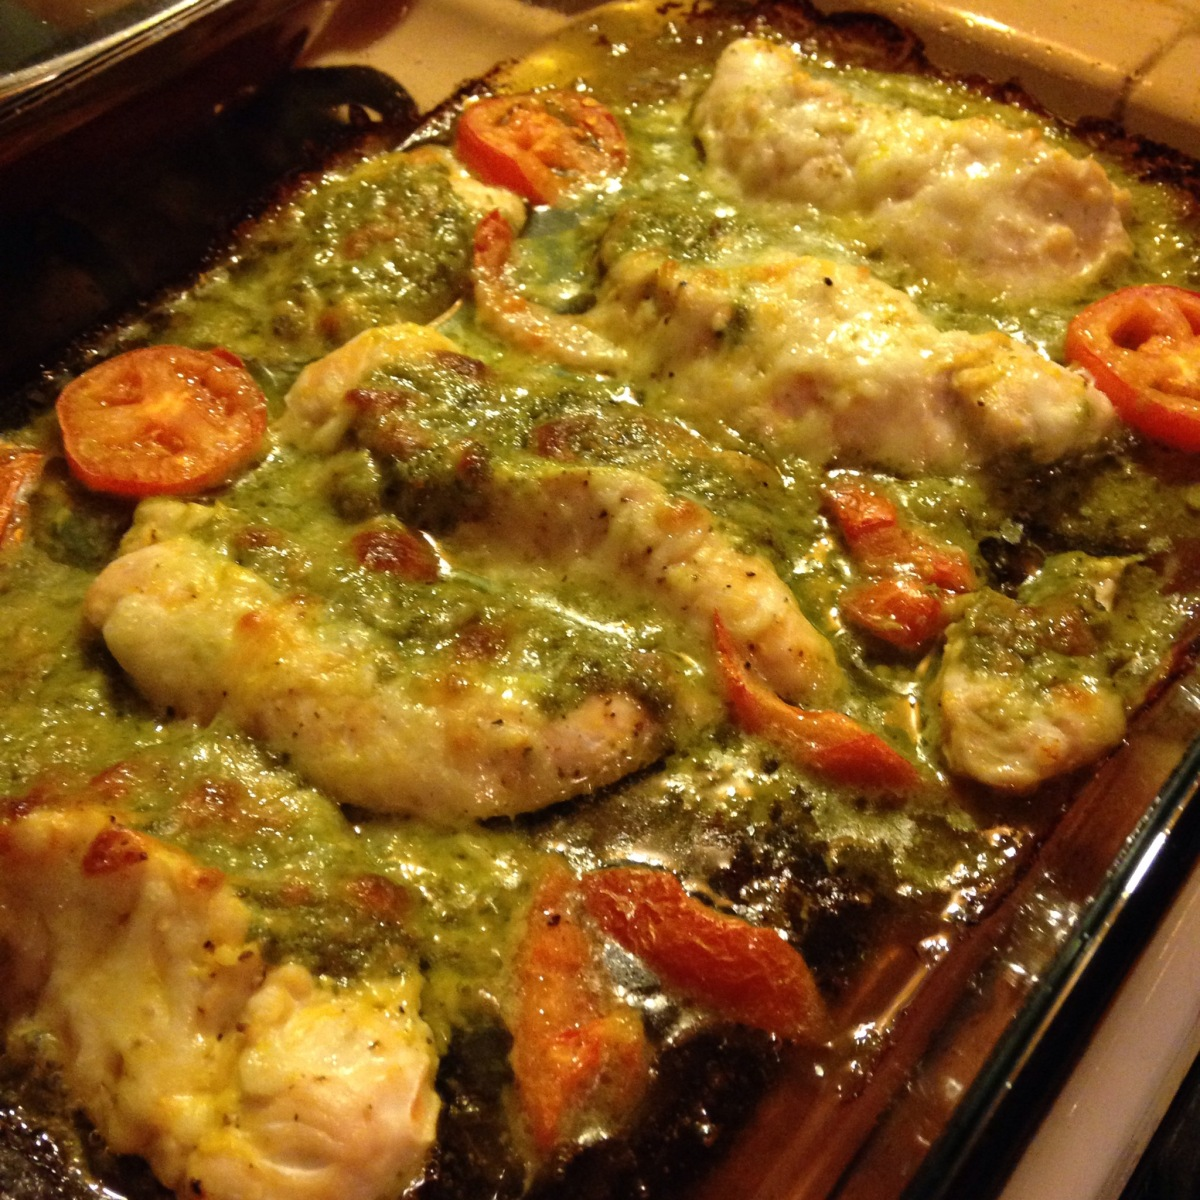 Baked Chicken stuffed with Pesto & Mozzarella Cheese